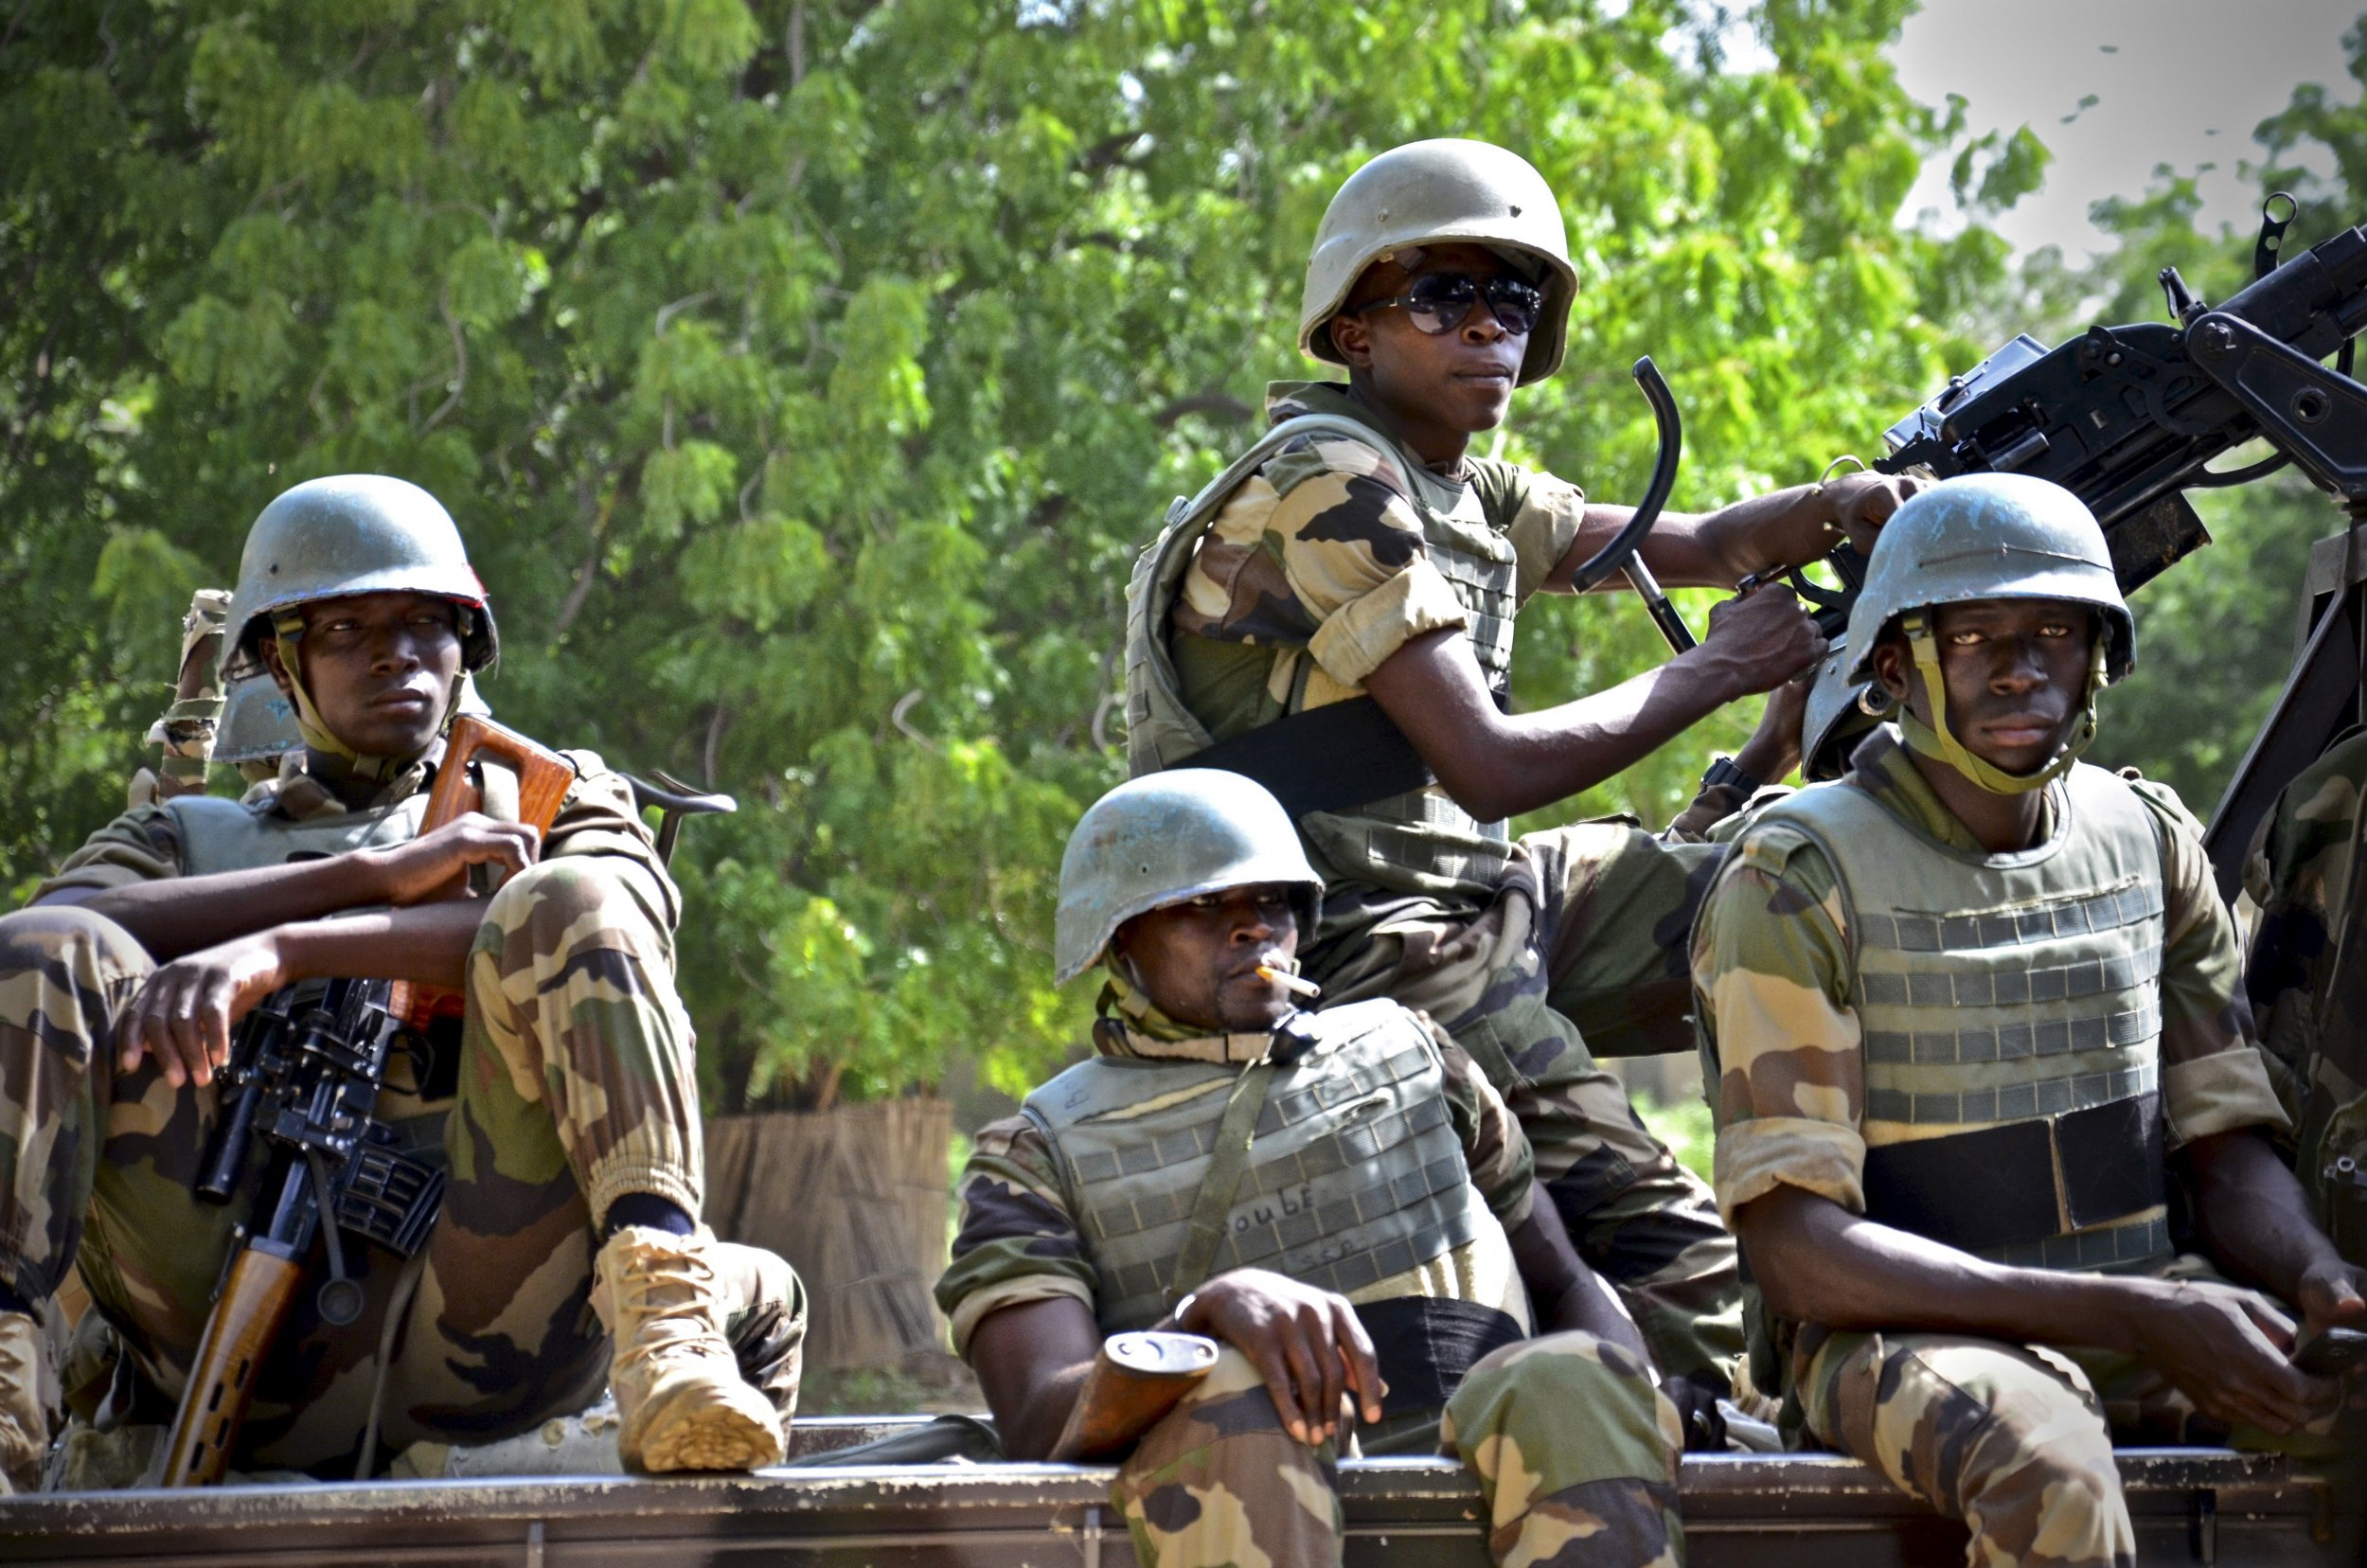 Niger soldiers provide security at a Boko Haram summit in Diffa city, Niger.